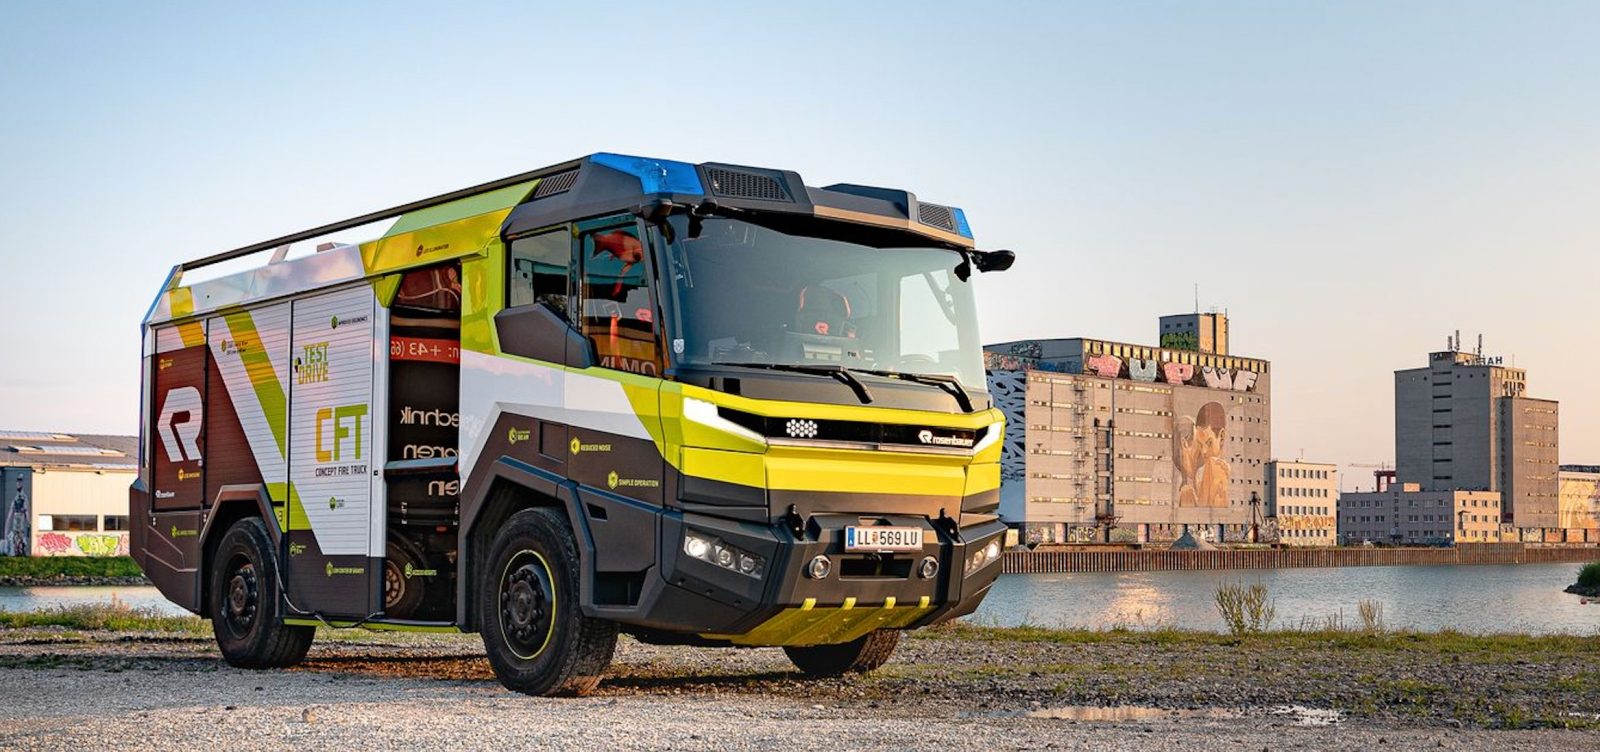 This $6 million electric fire engine is coming to the US